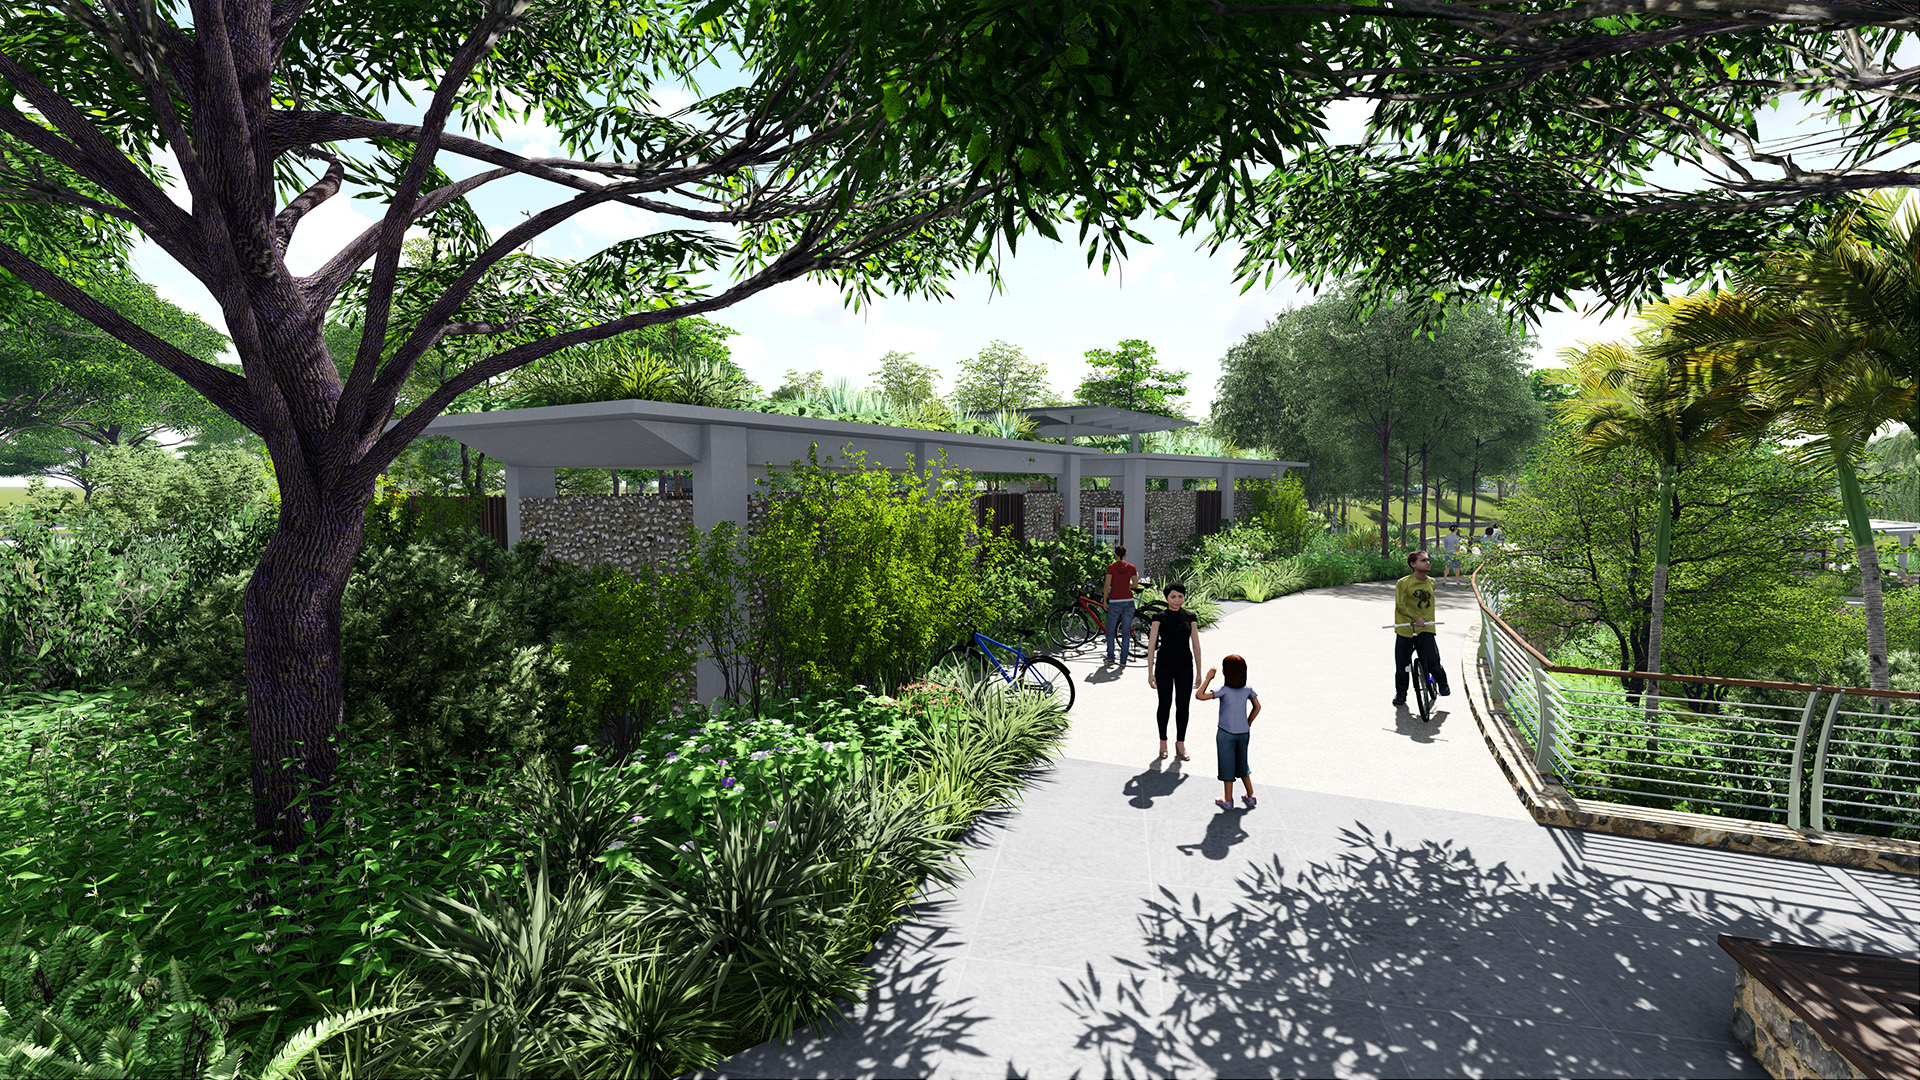 Lookout area and restrooms at Rower's Bay on the Round Island Route by Stephen Caffyn Landscape Design